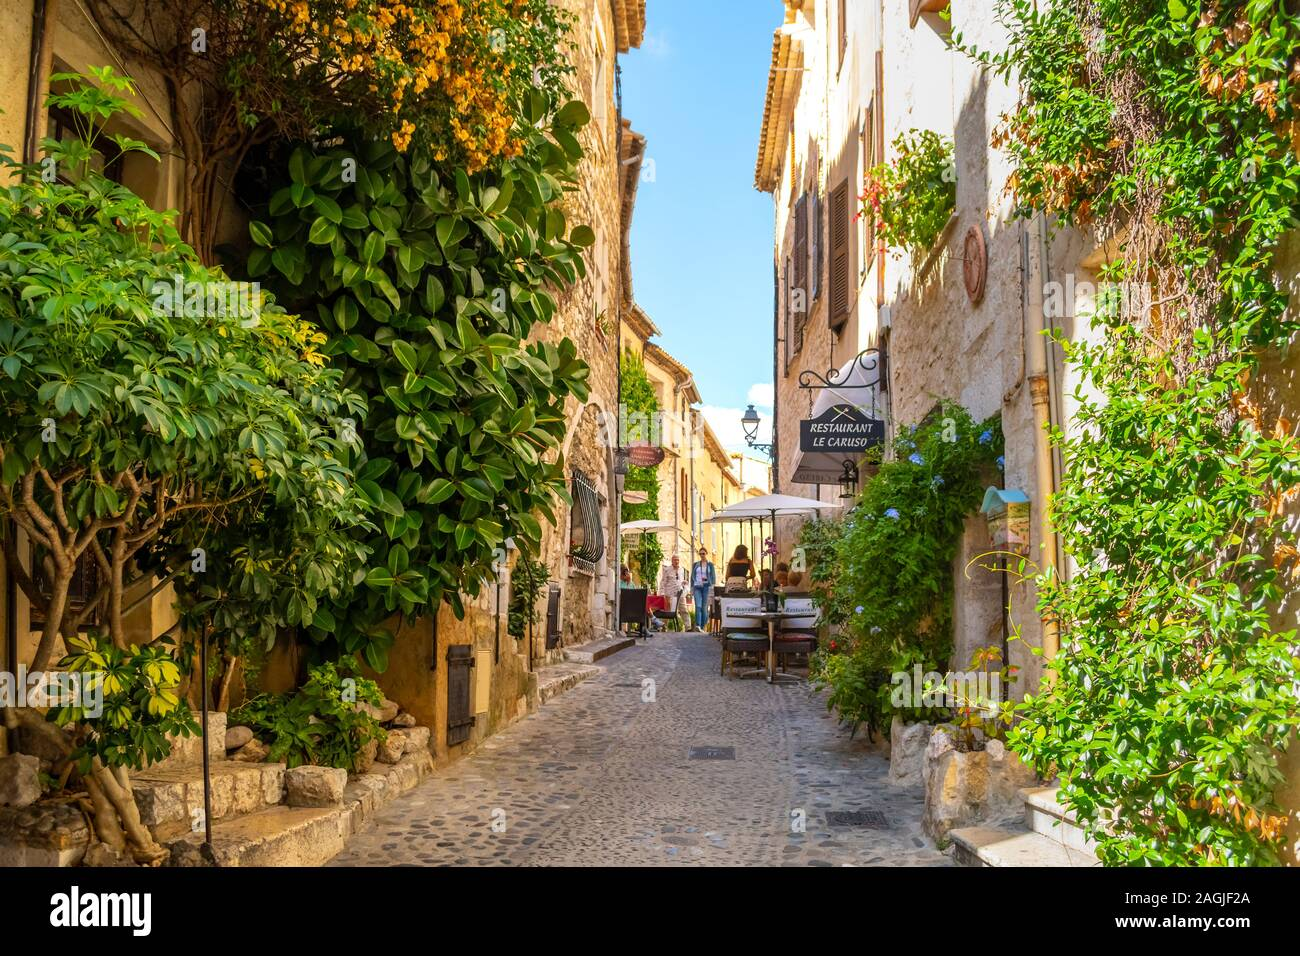 Cafes, shops and art galleries line the narrow cobblestone roads in the medieval hilltop village of St Paul de Vance on the French Riviera. Stock Photo